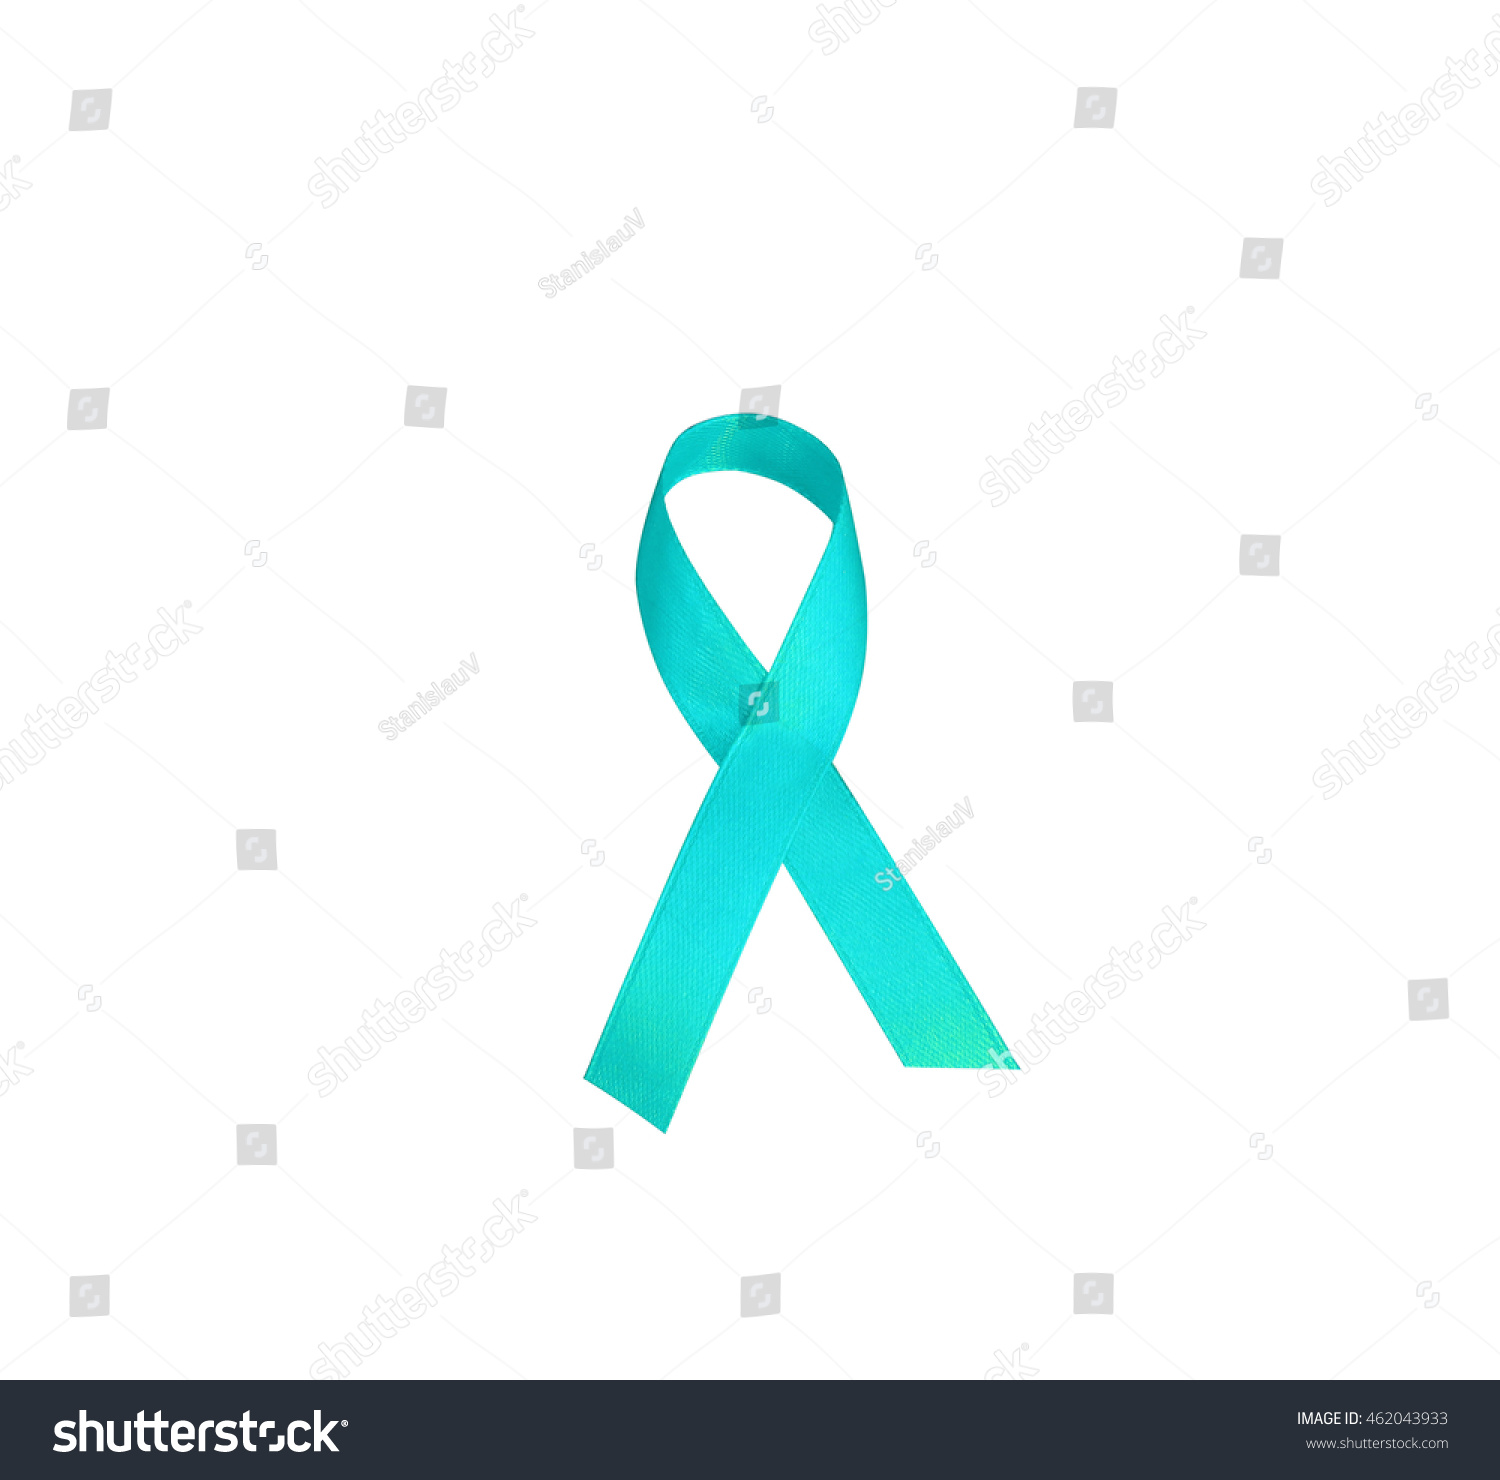 Turquoise awareness ribbon support people ovarian stock photo turquoise awareness ribbon to support people with ovarian cancer concept questions assistance and actions biocorpaavc